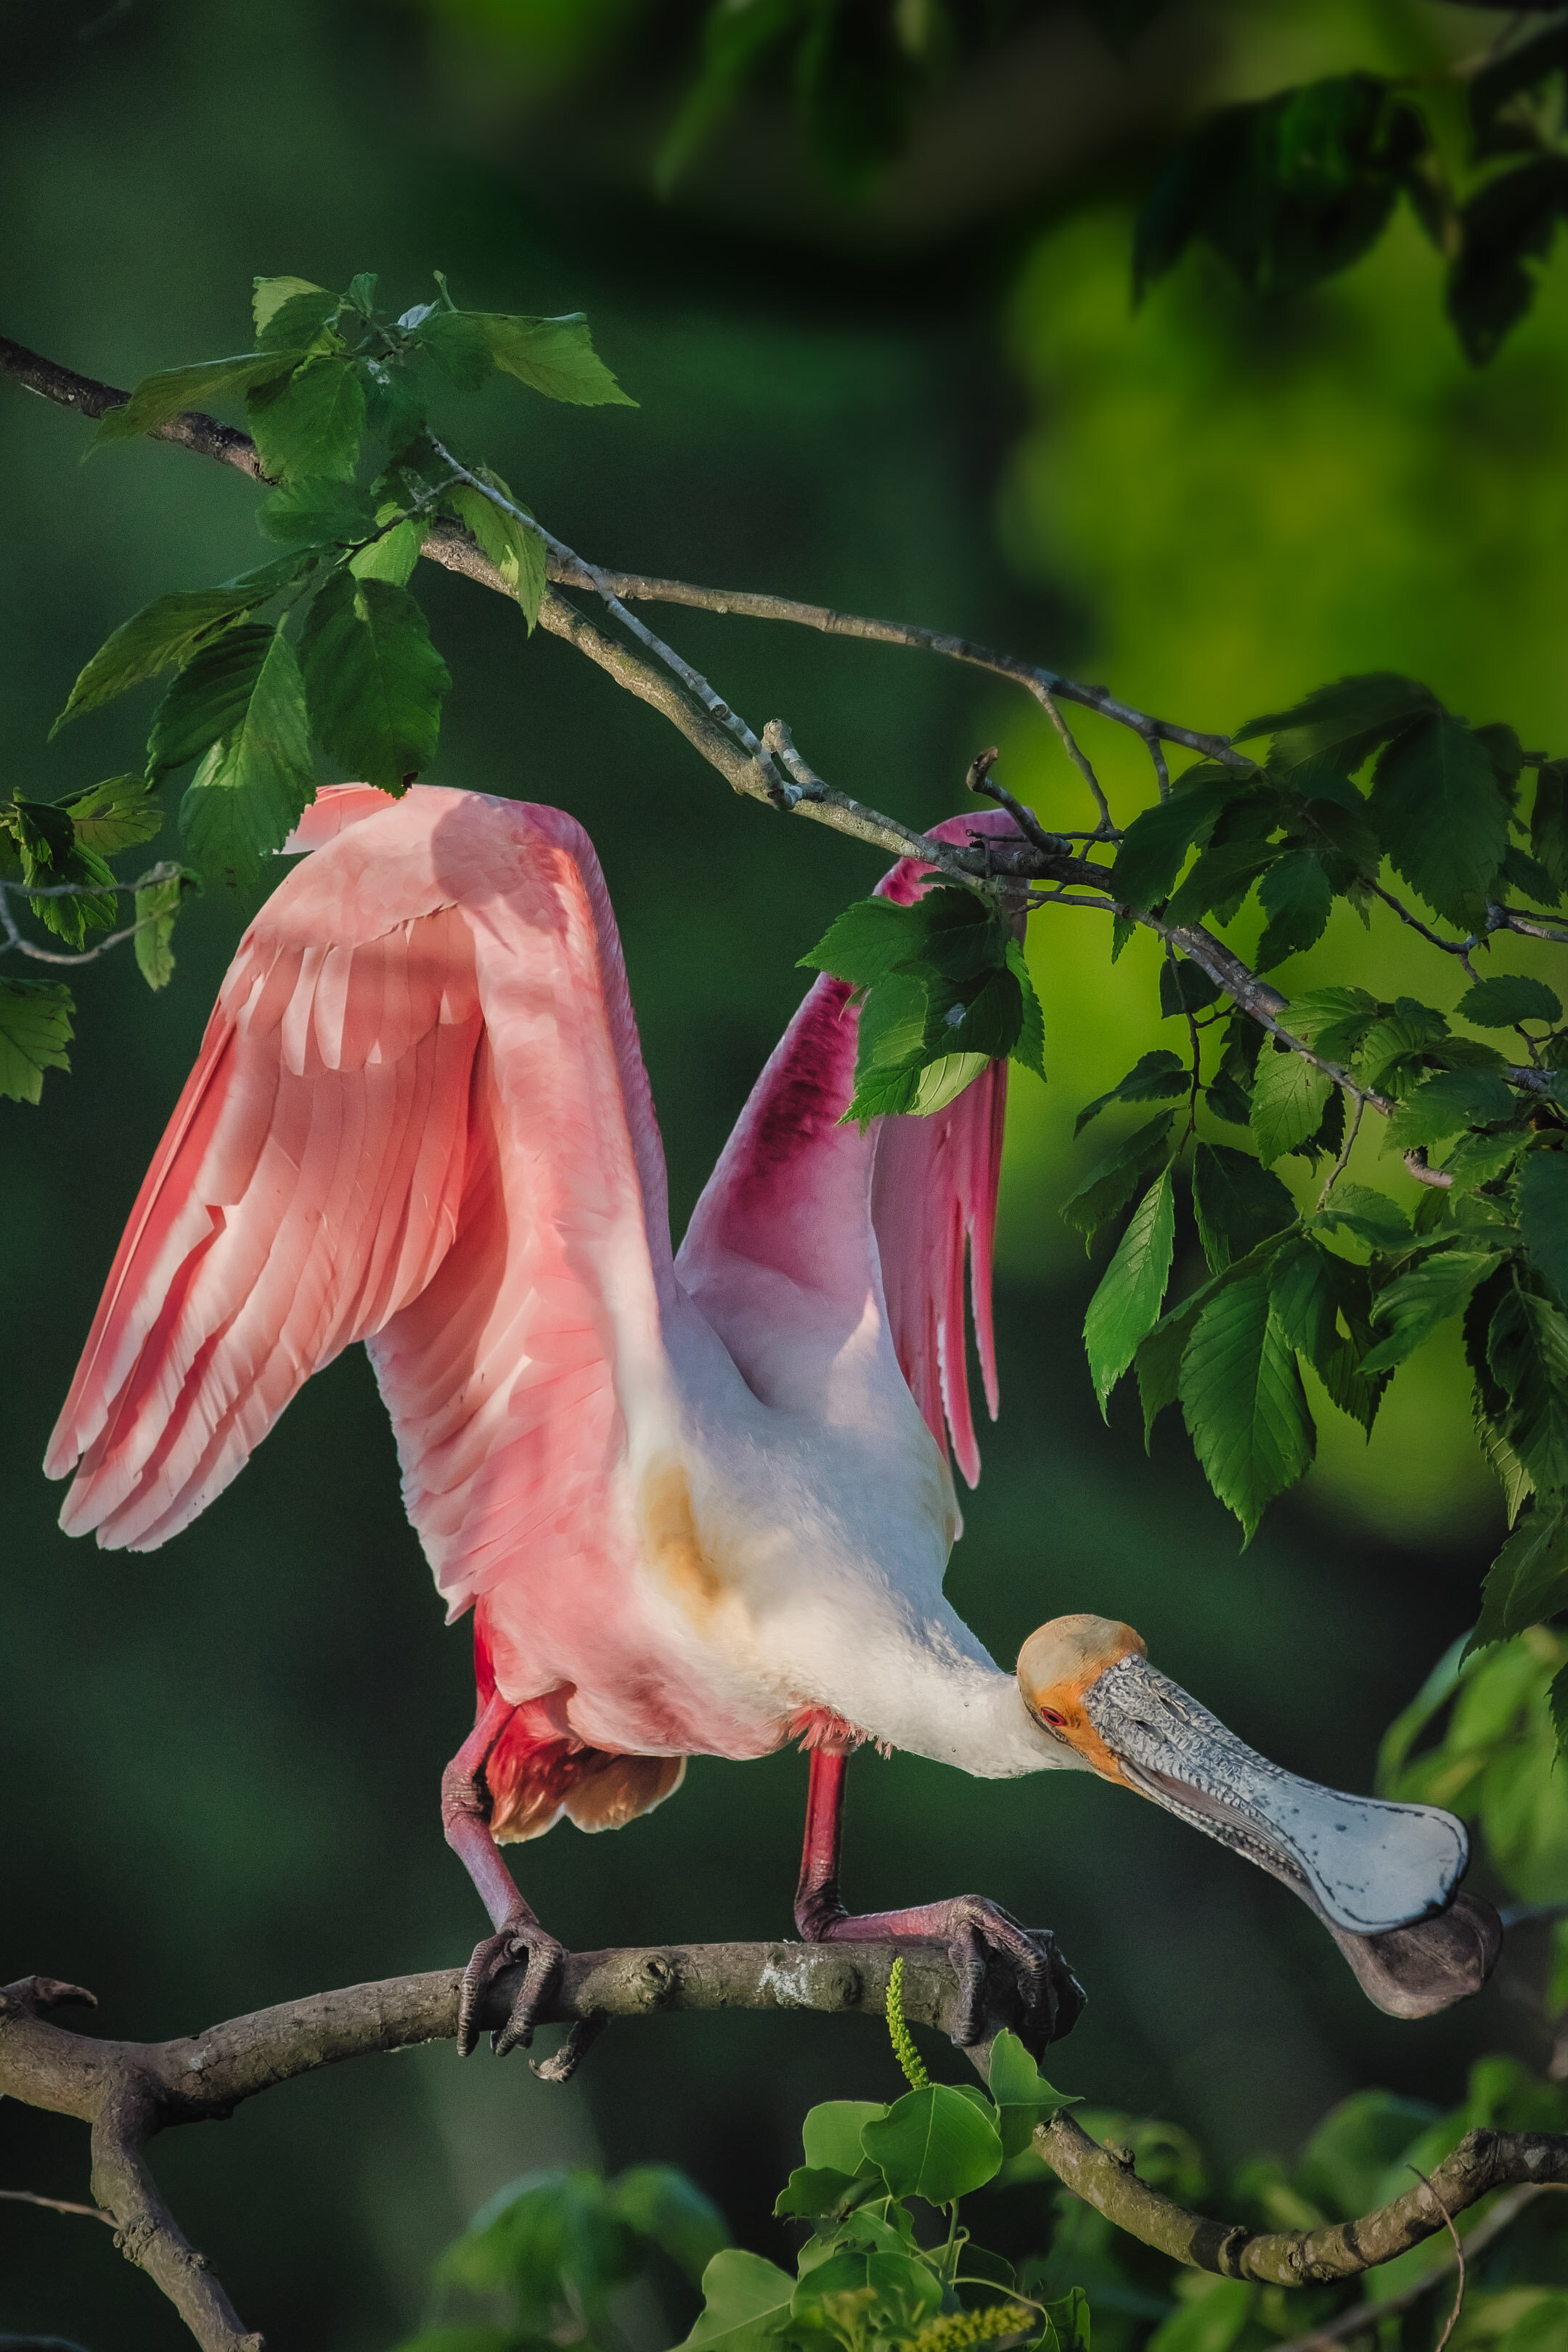 Roseate Spoonbill Collecting Sticks for the Nest